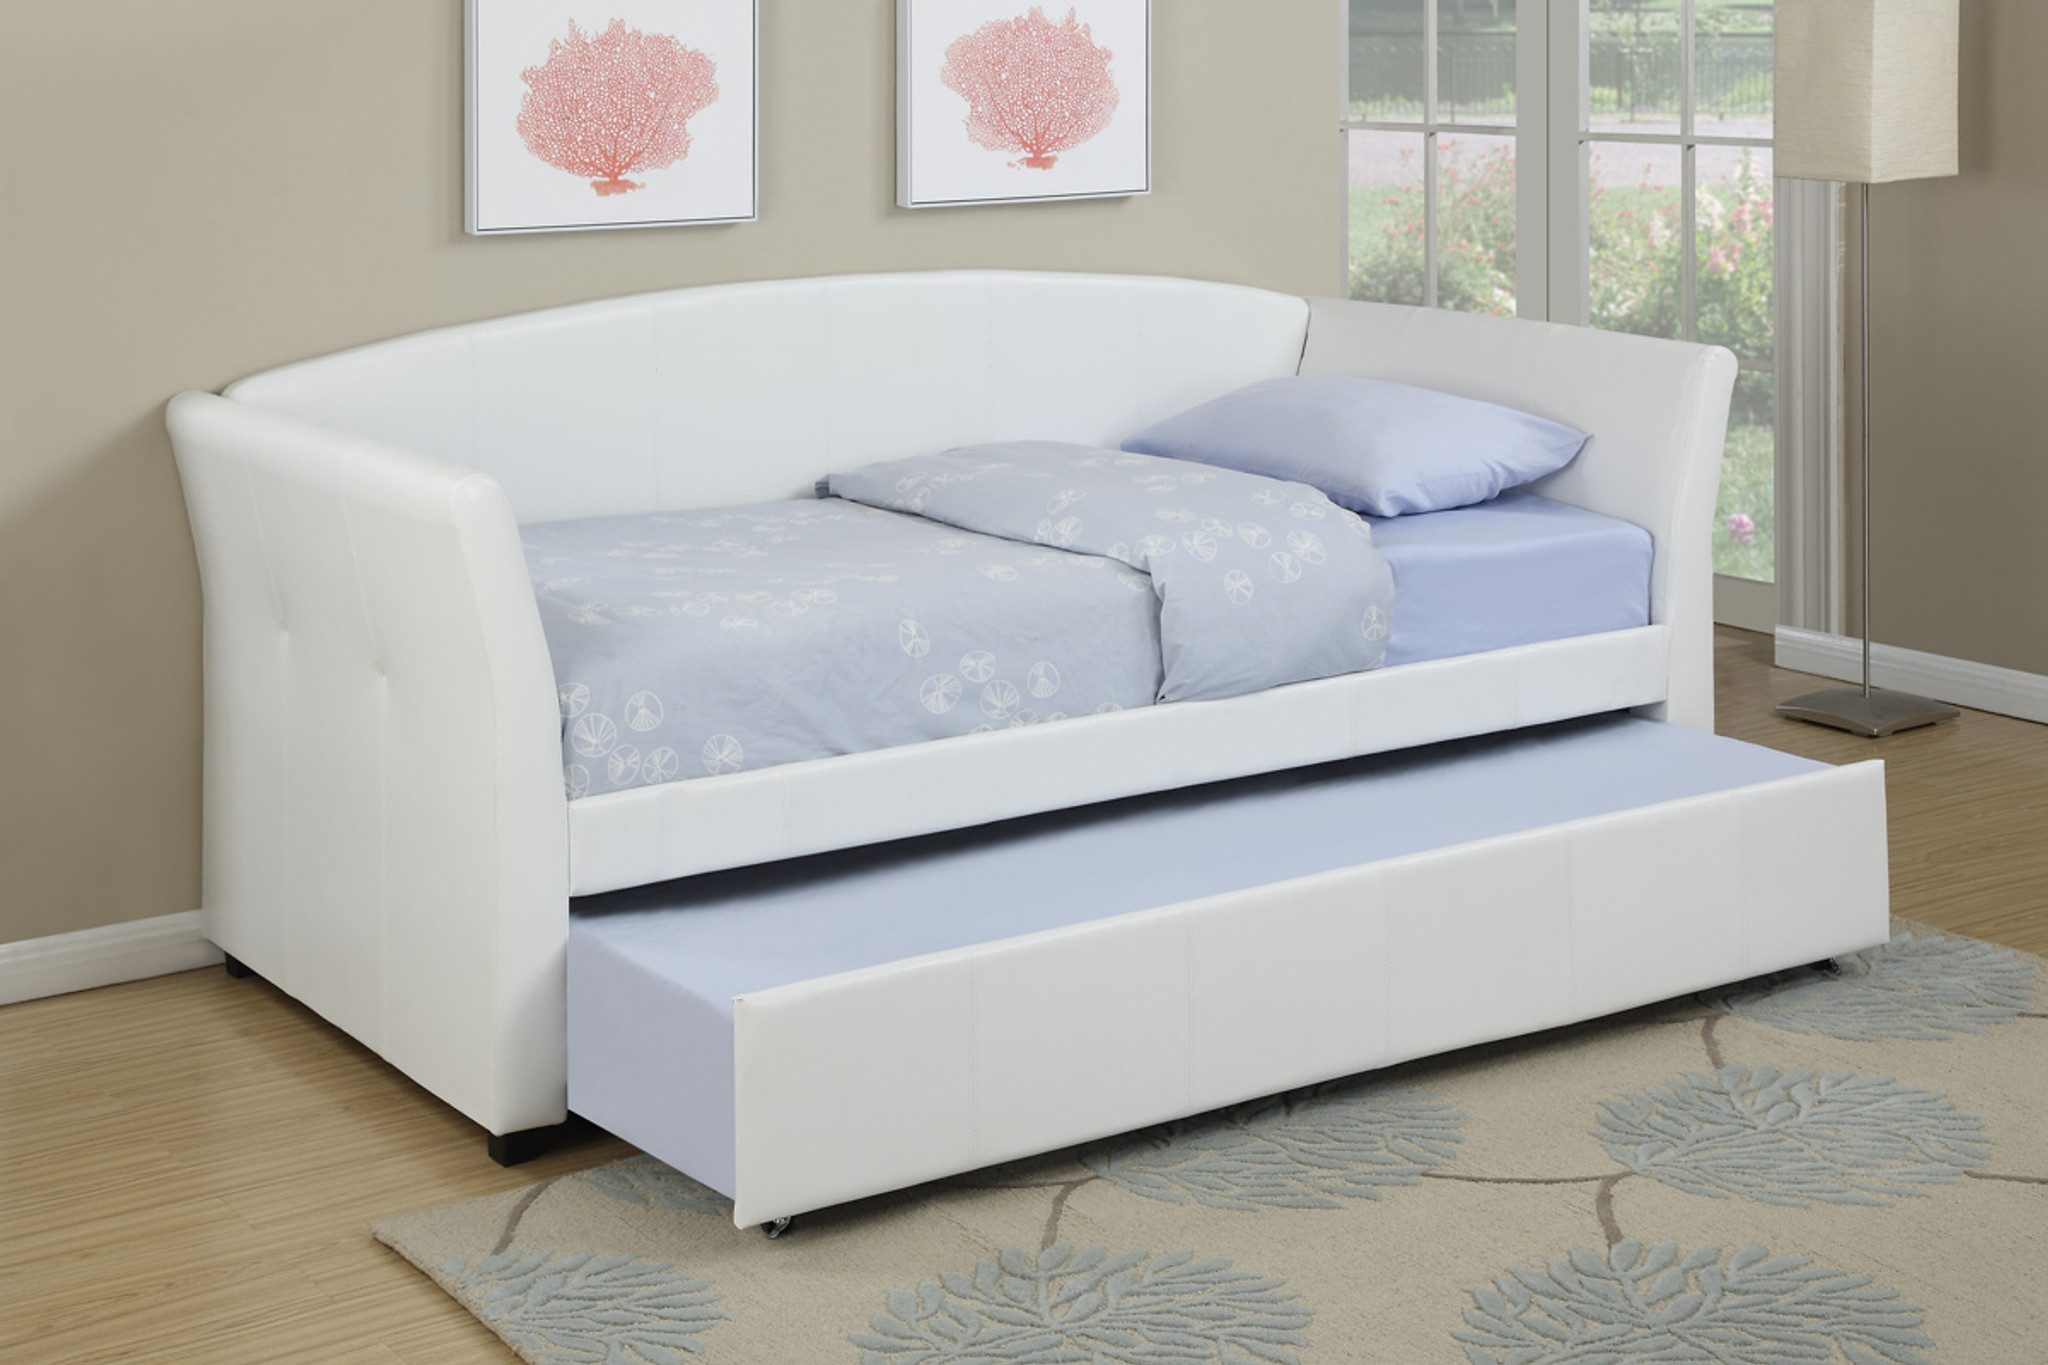 Picture of: Kassa Mall Home Furniture F9259 Twin Bed Daybed W Trundle Upholstered In White Leather